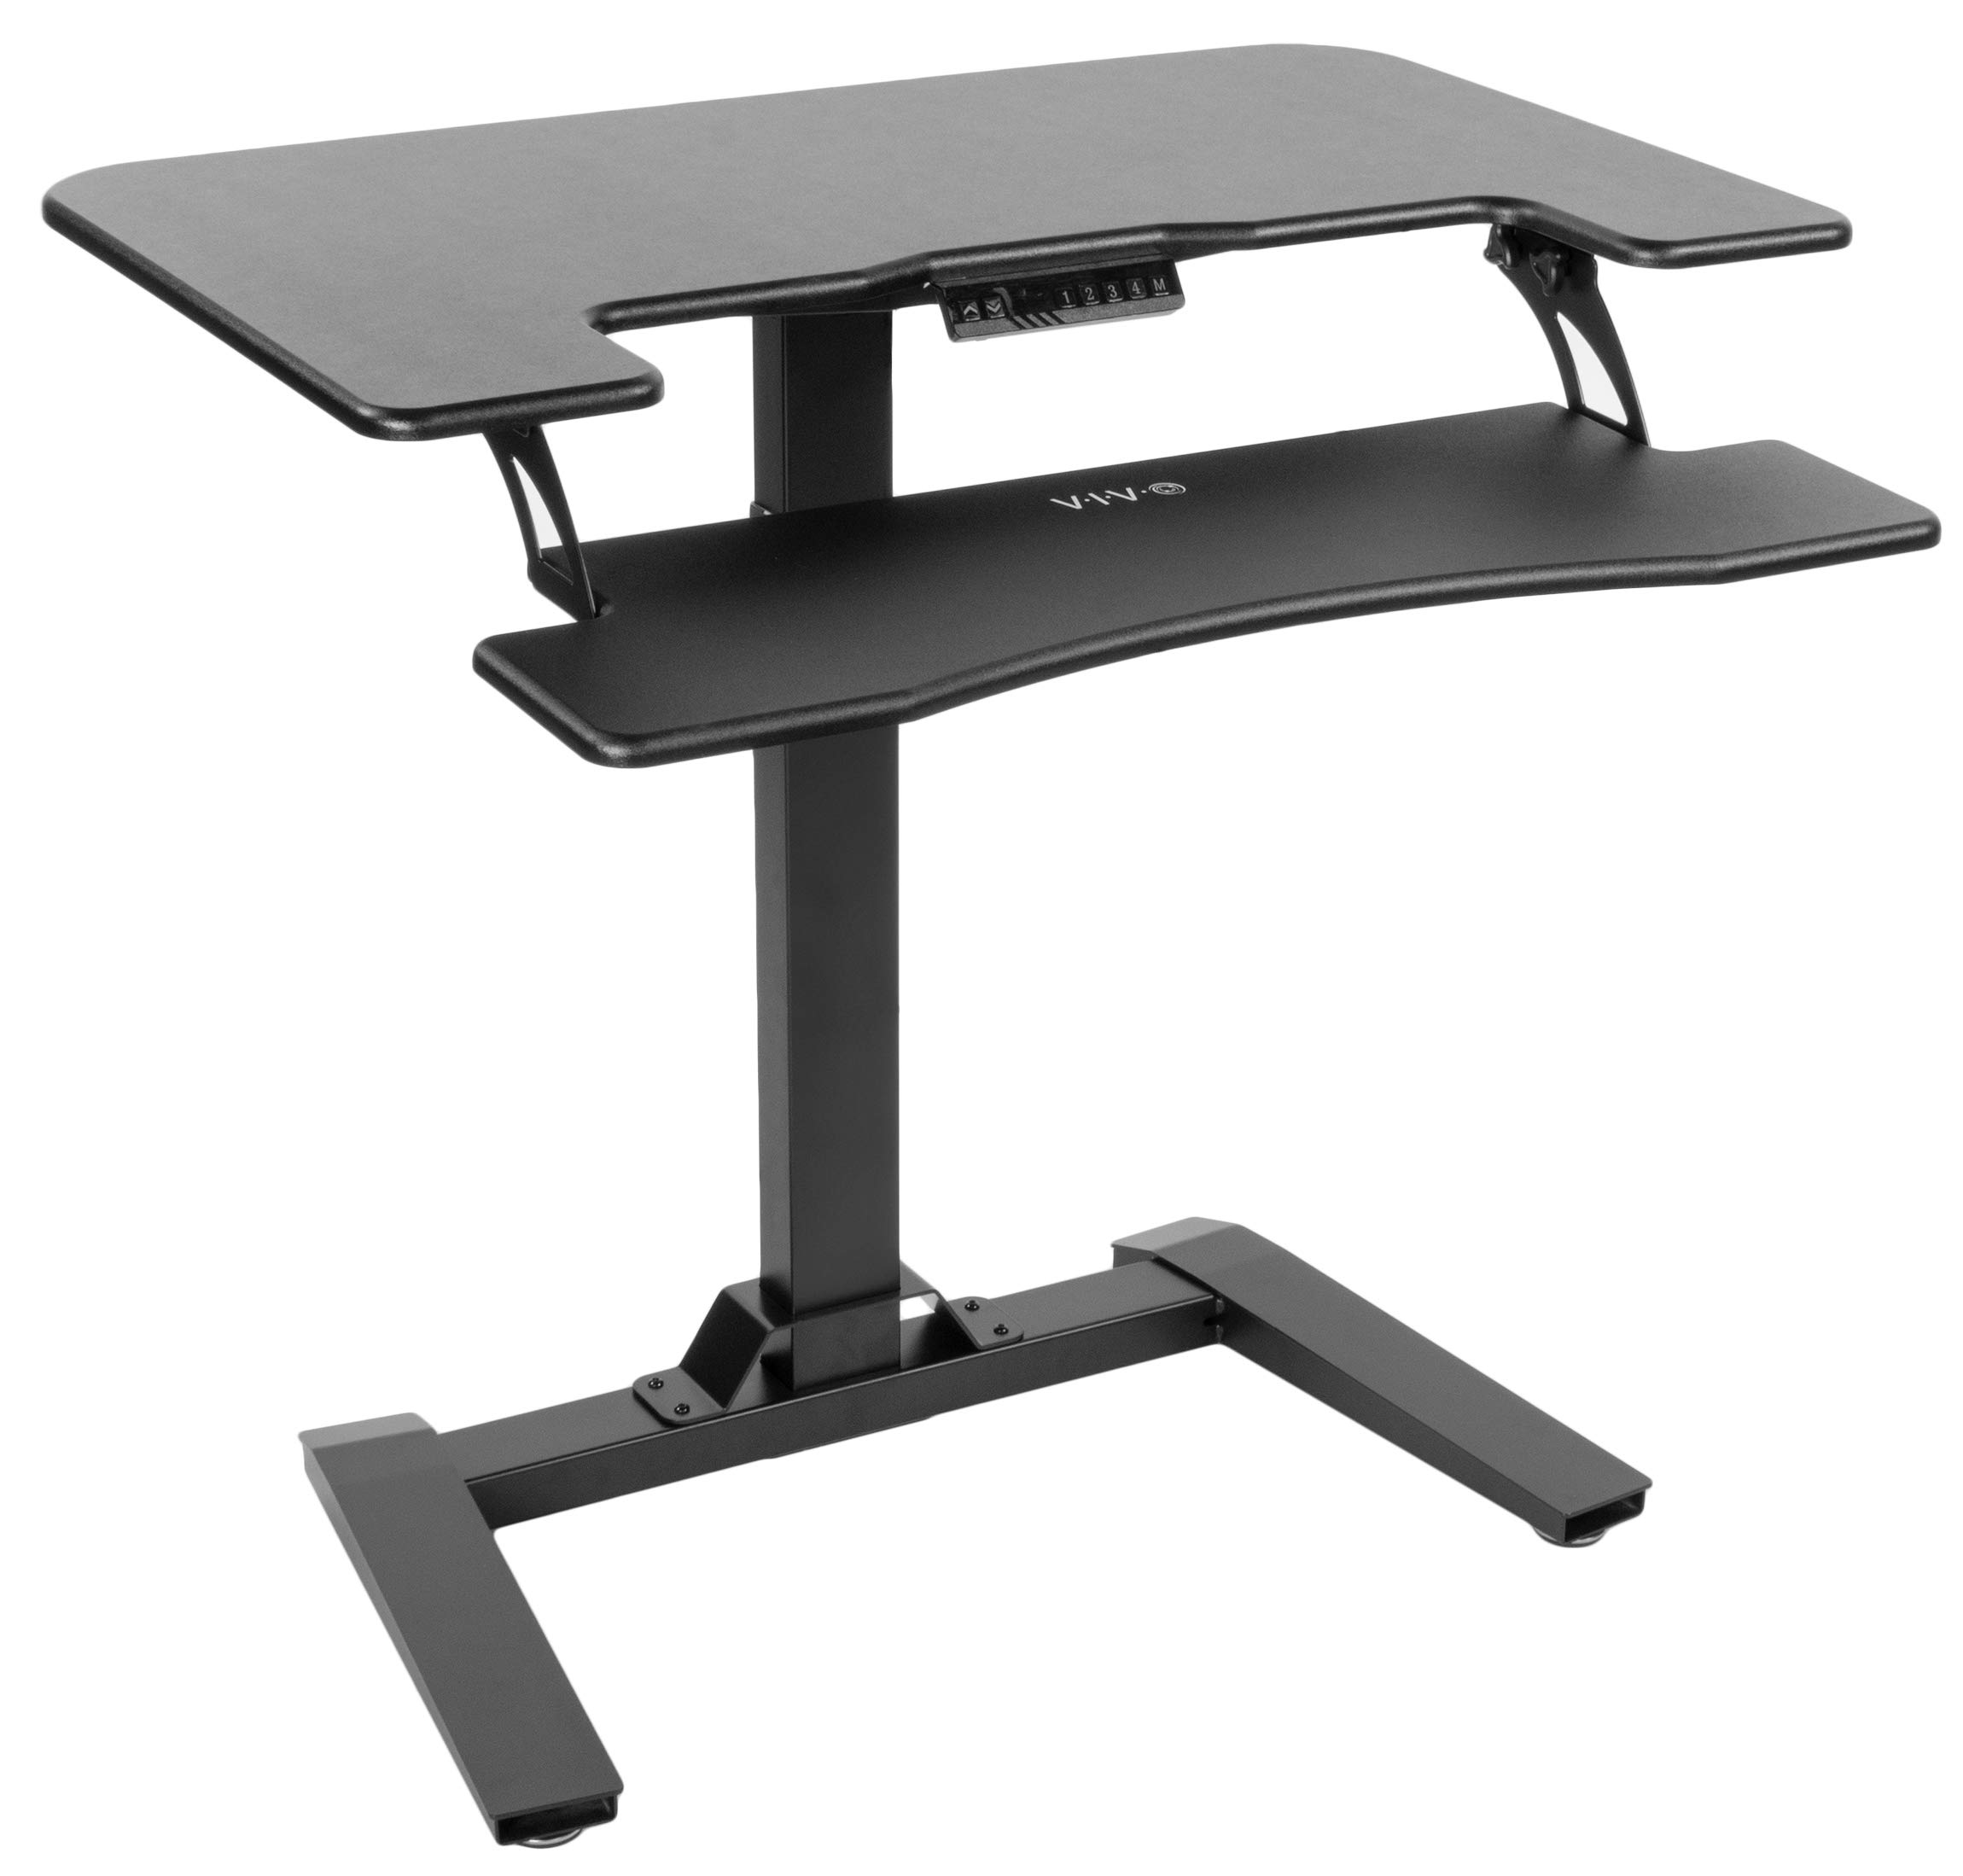 VIVO Black Electric Height Adjustable Two Platform Standing Desk with Base | Dual Tiered Small Space Table Workstation Stand 36'' Top (DESK-V111V)